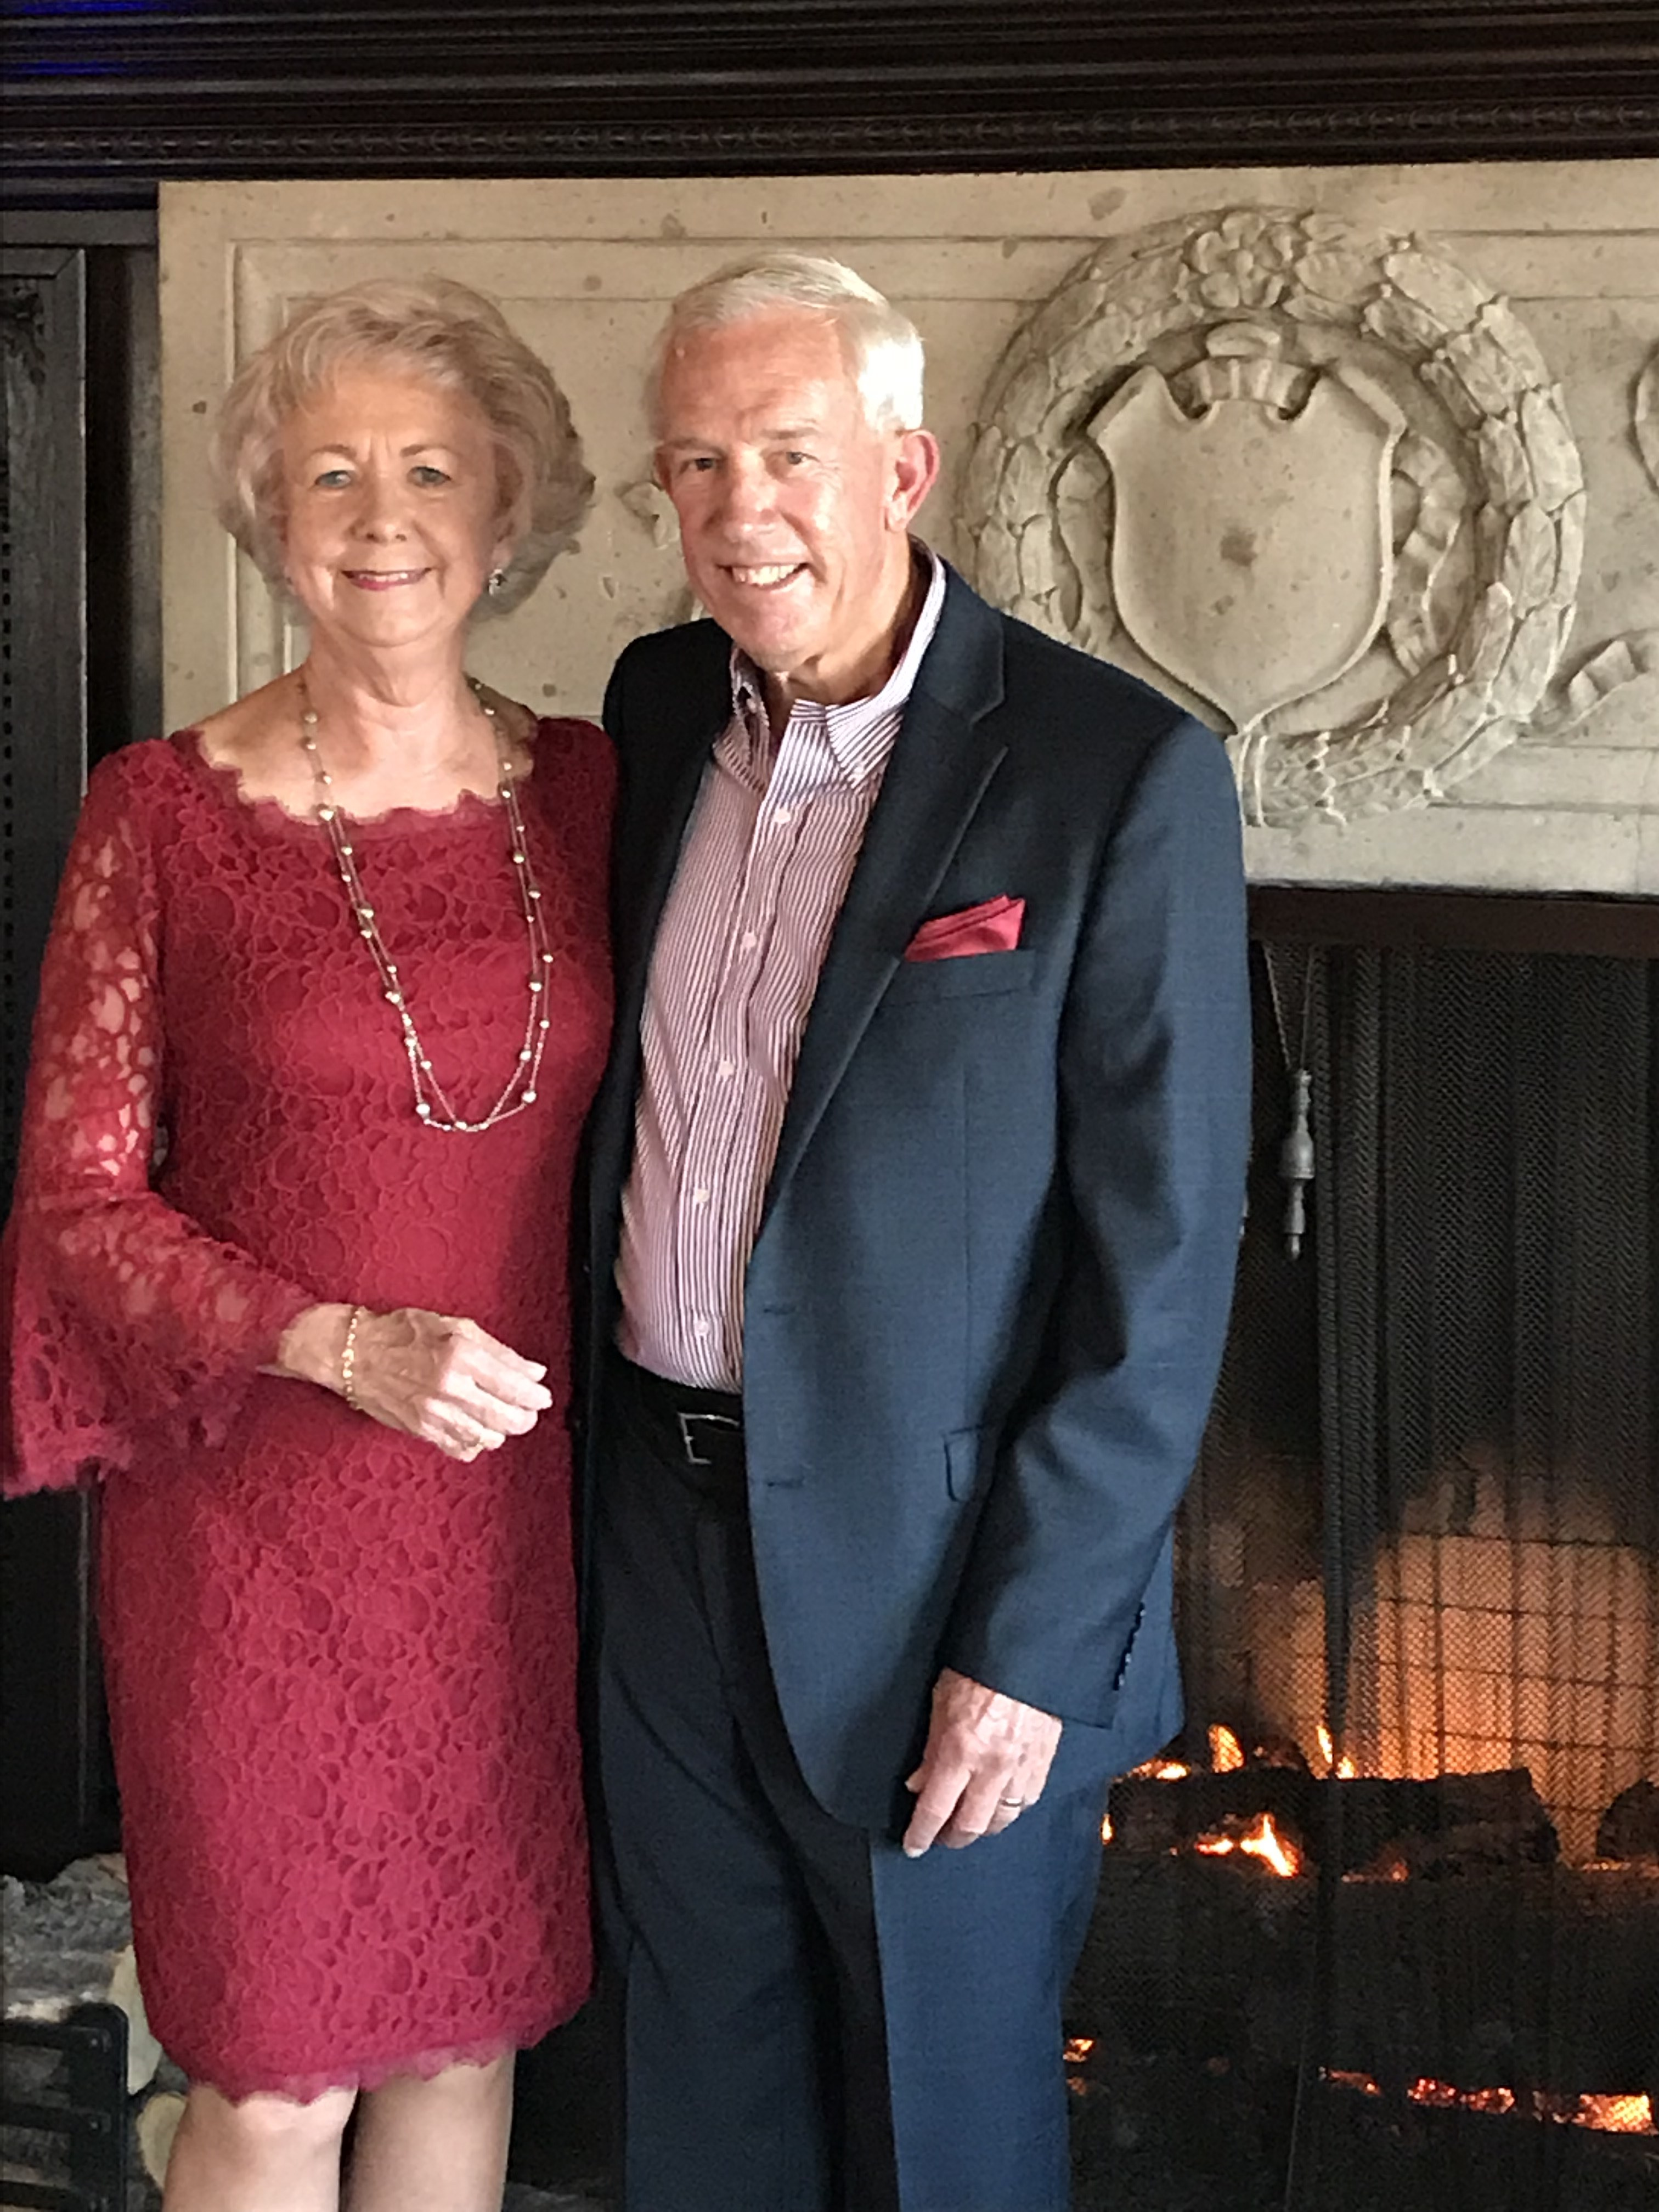 Rita and David Evans photographed at their 50th wedding anniversary celebration